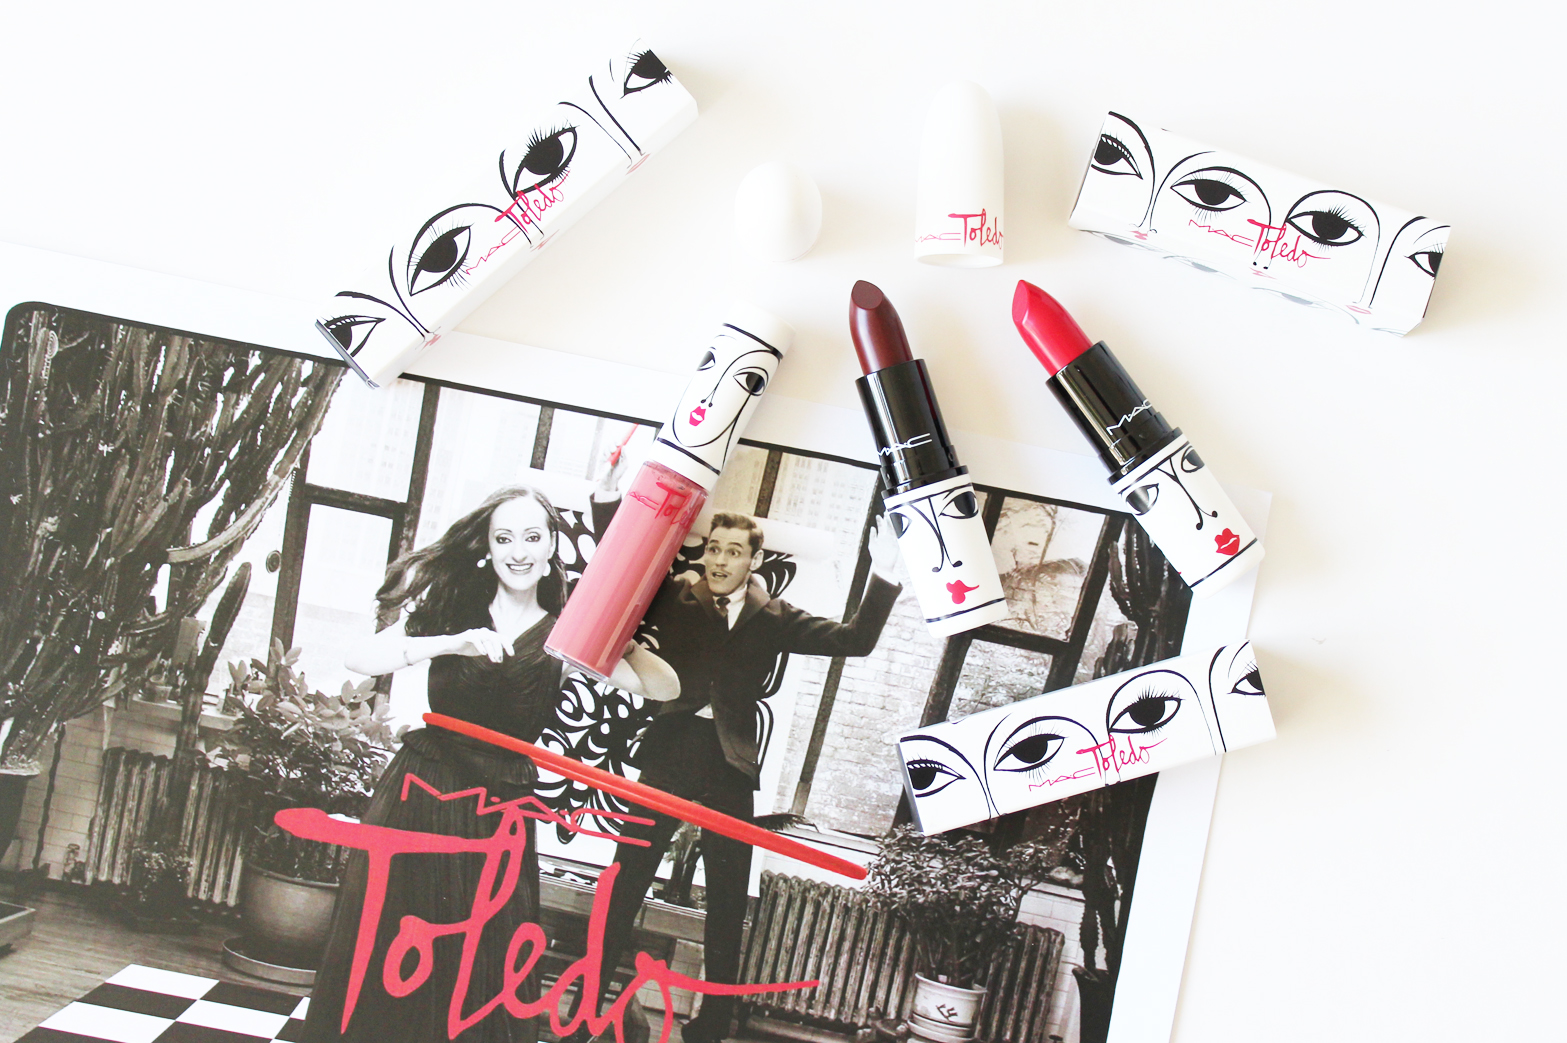 M.A.C x TOLEDO COLLECTION | Review + Swatches - CassandraMyee